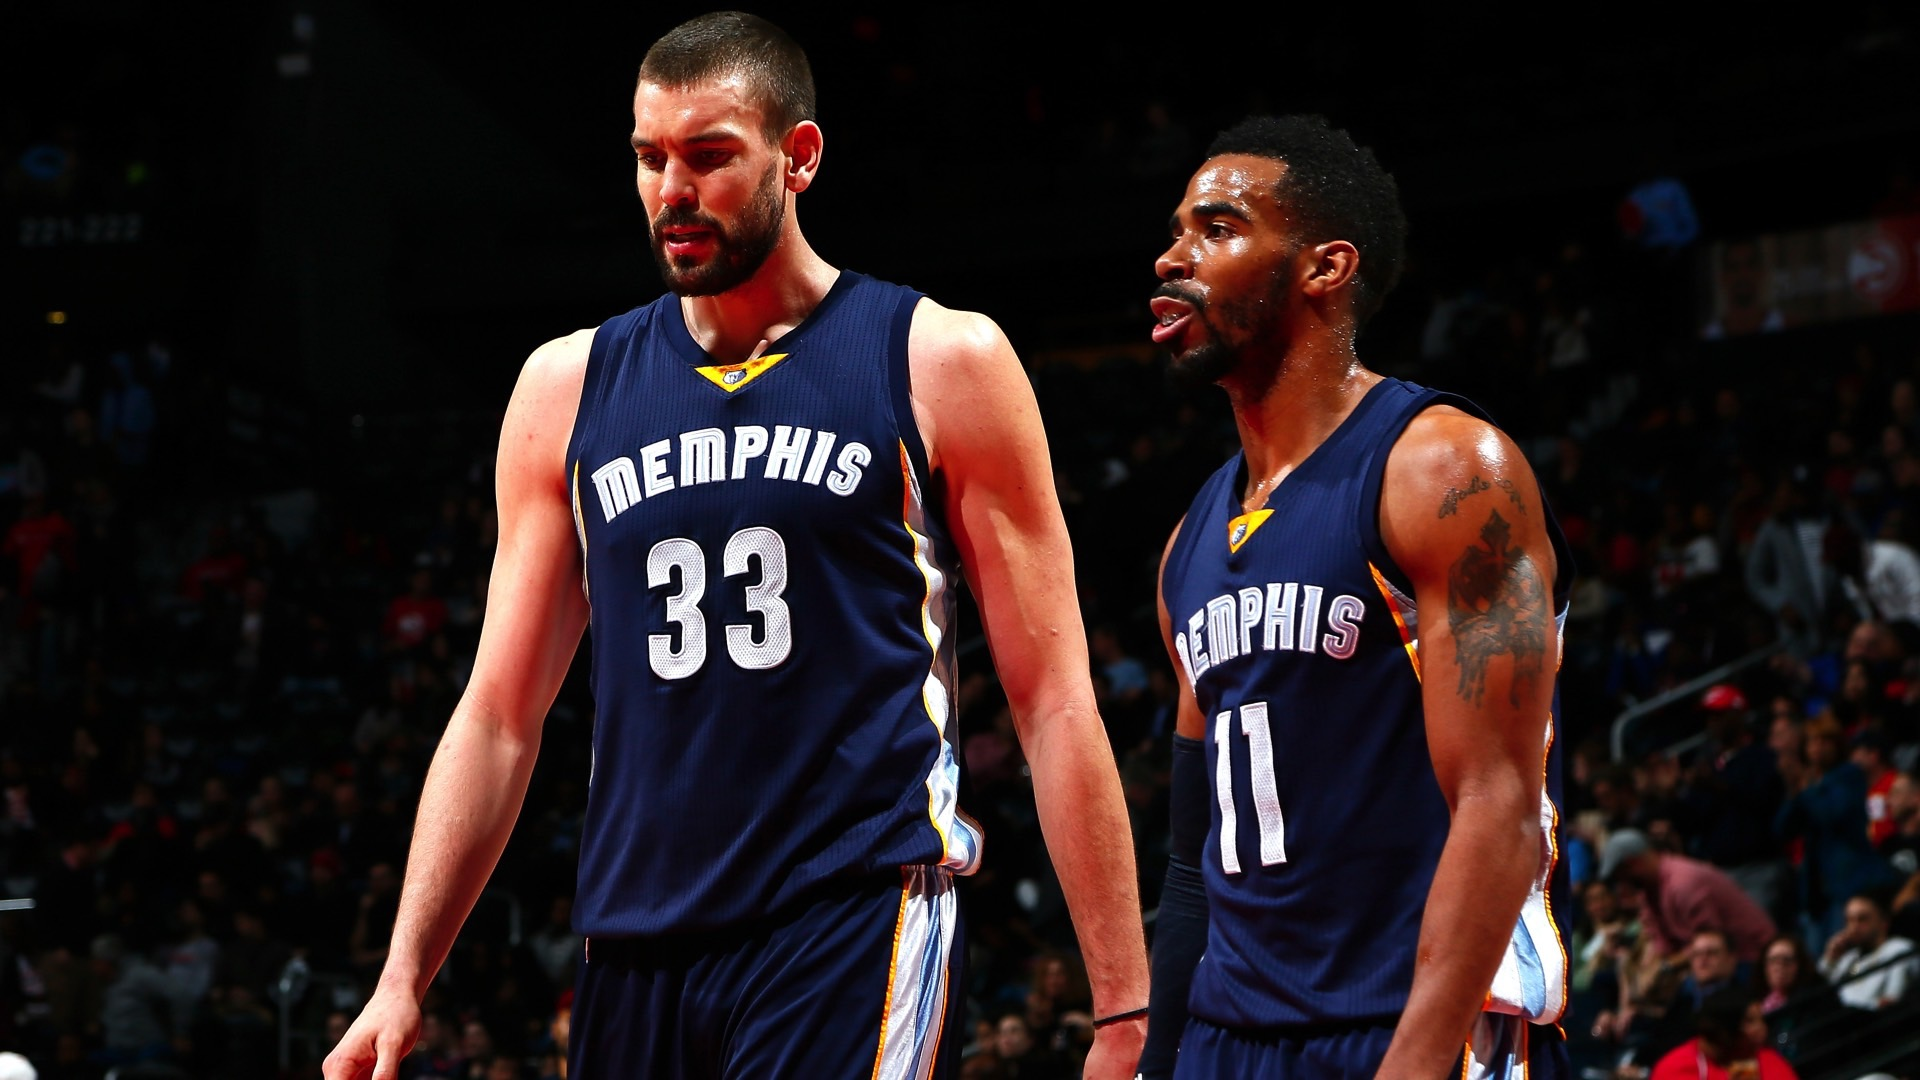 marc-gasol-010915-FTR-GETTY.jpeg